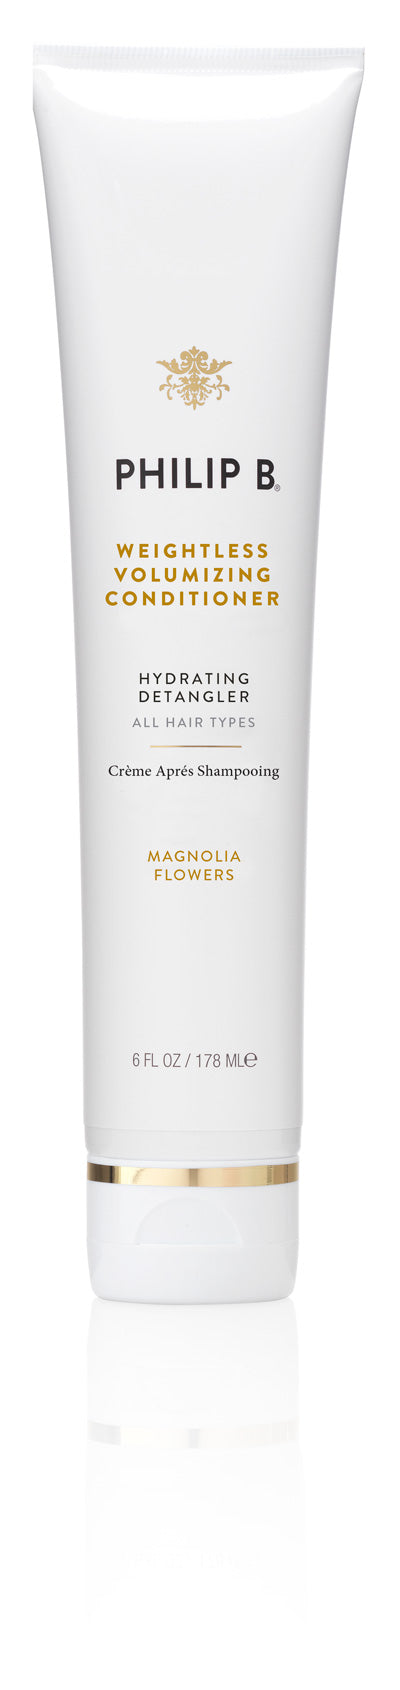 Weightless Volumizing Conditioner